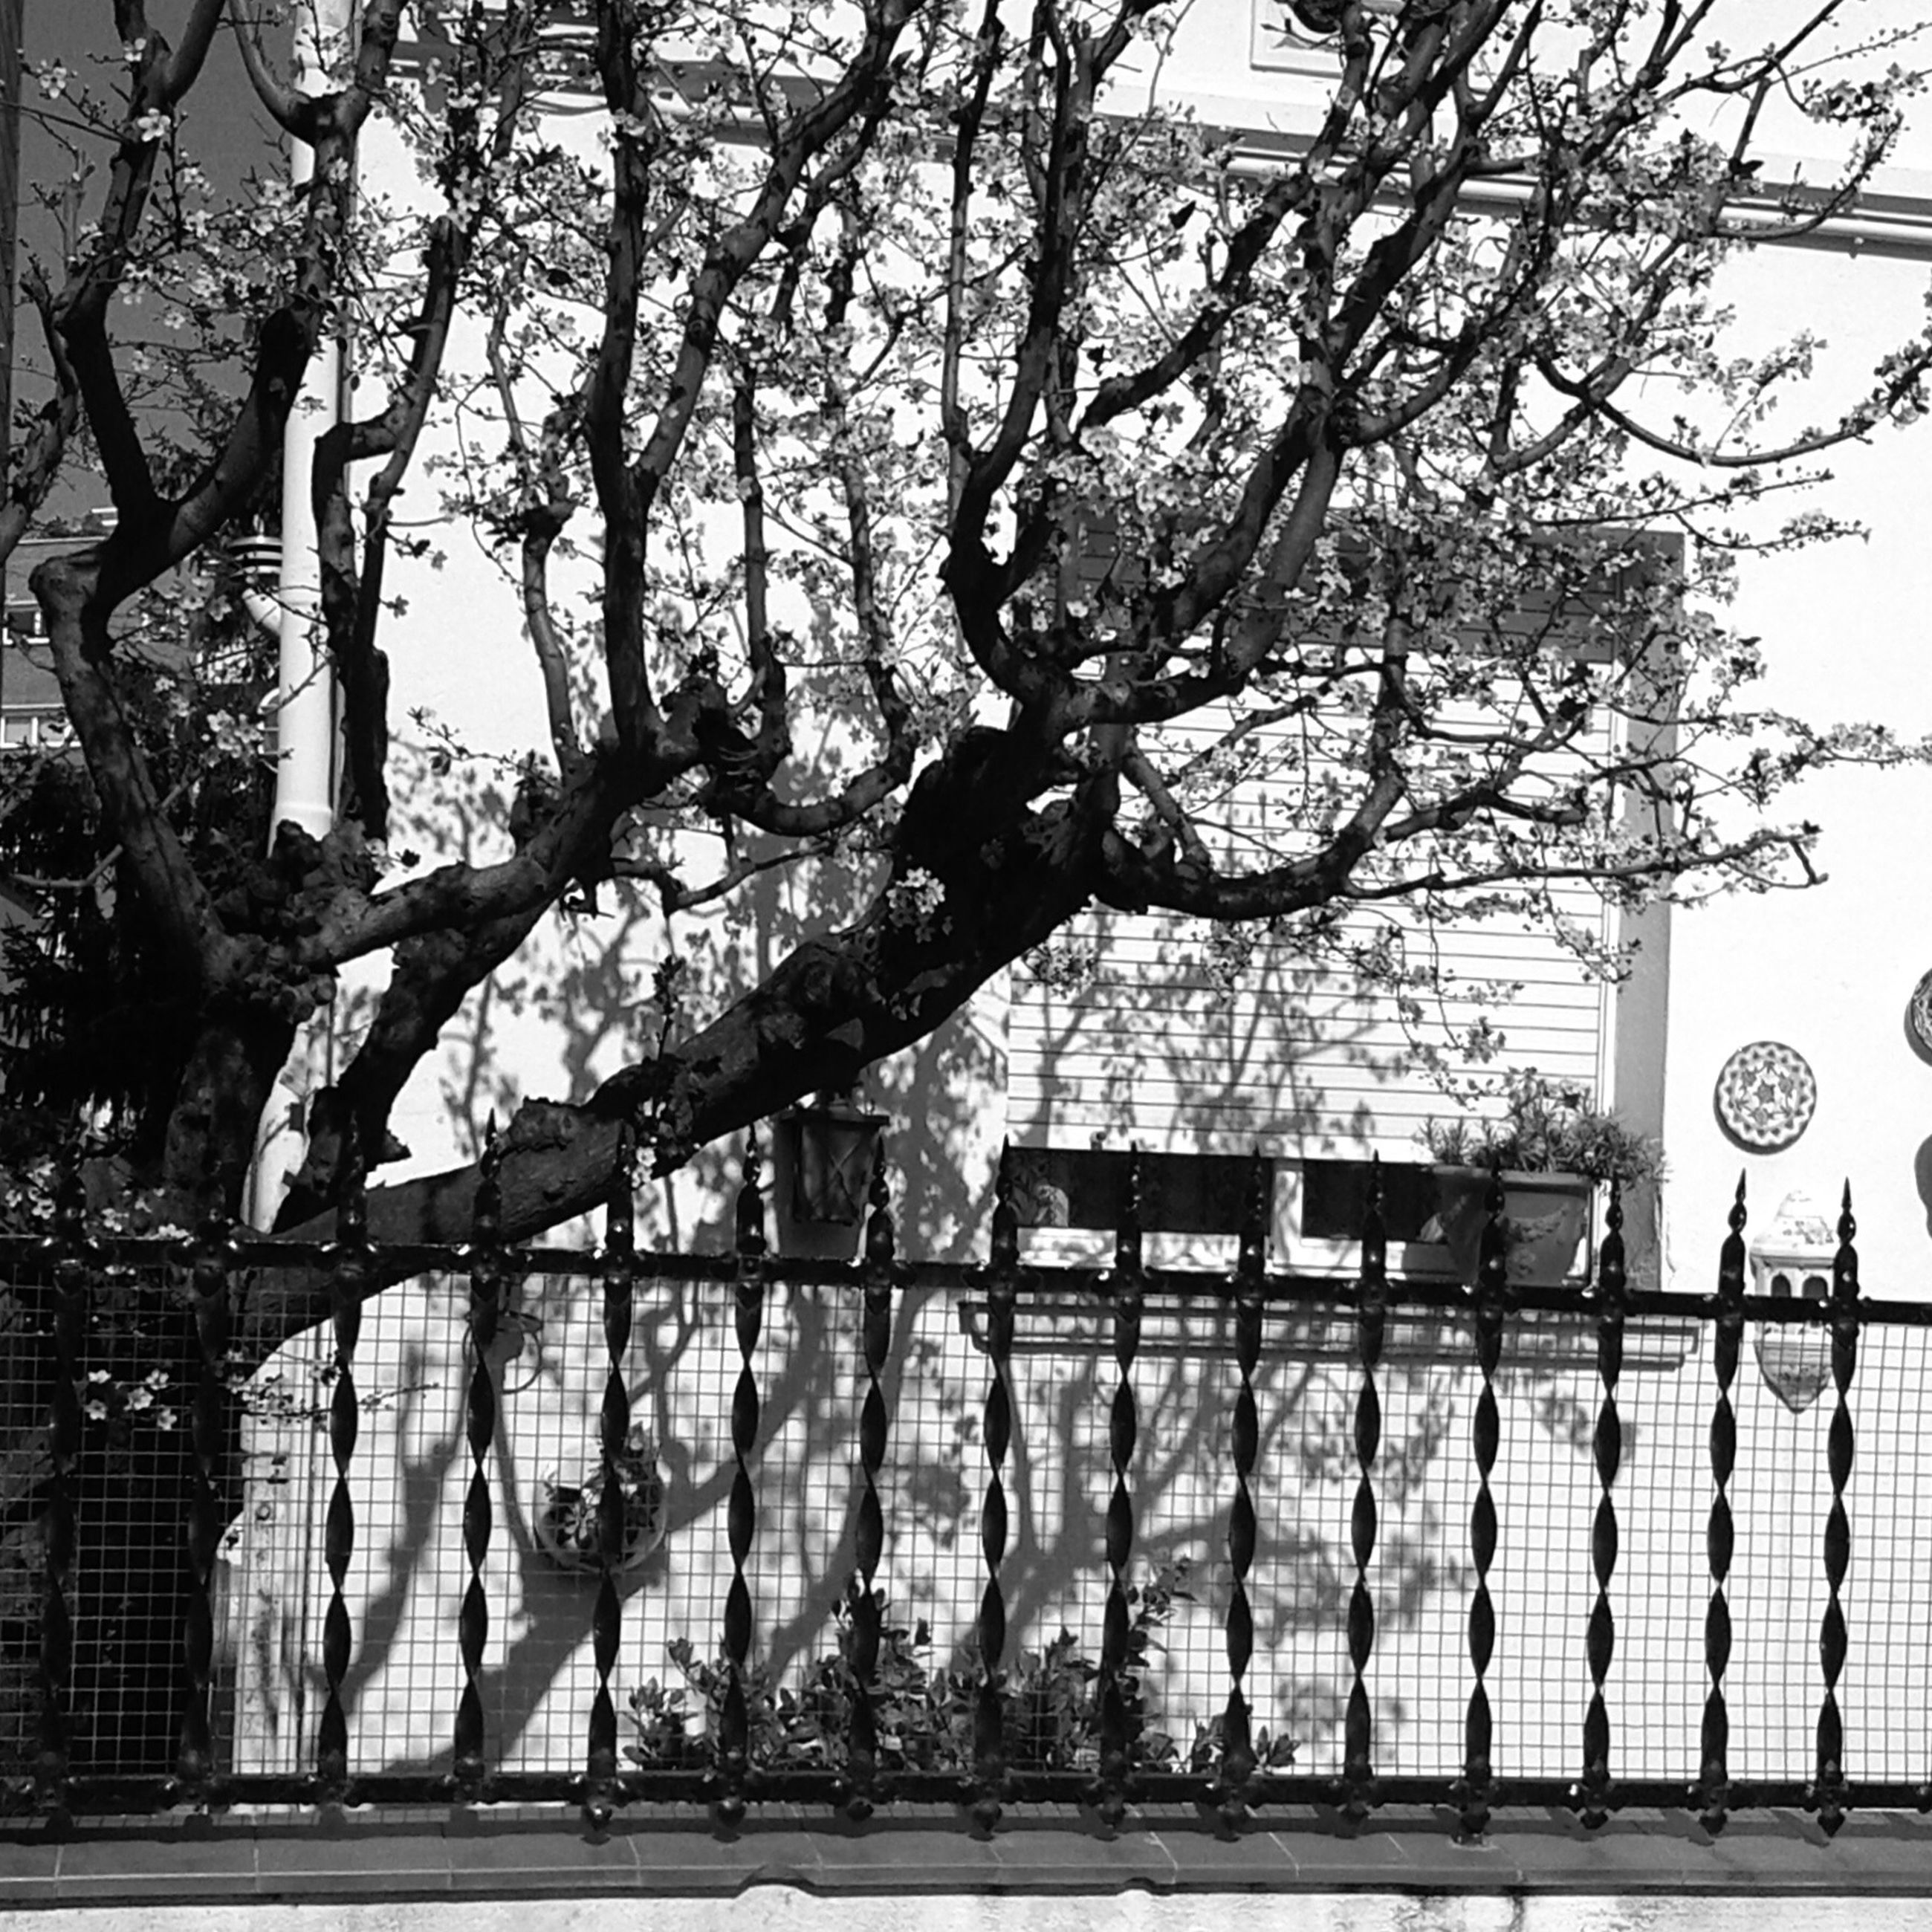 tree, bare tree, branch, built structure, building exterior, architecture, railing, fence, metal, gate, bicycle, safety, protection, day, no people, outdoors, security, street light, transportation, house